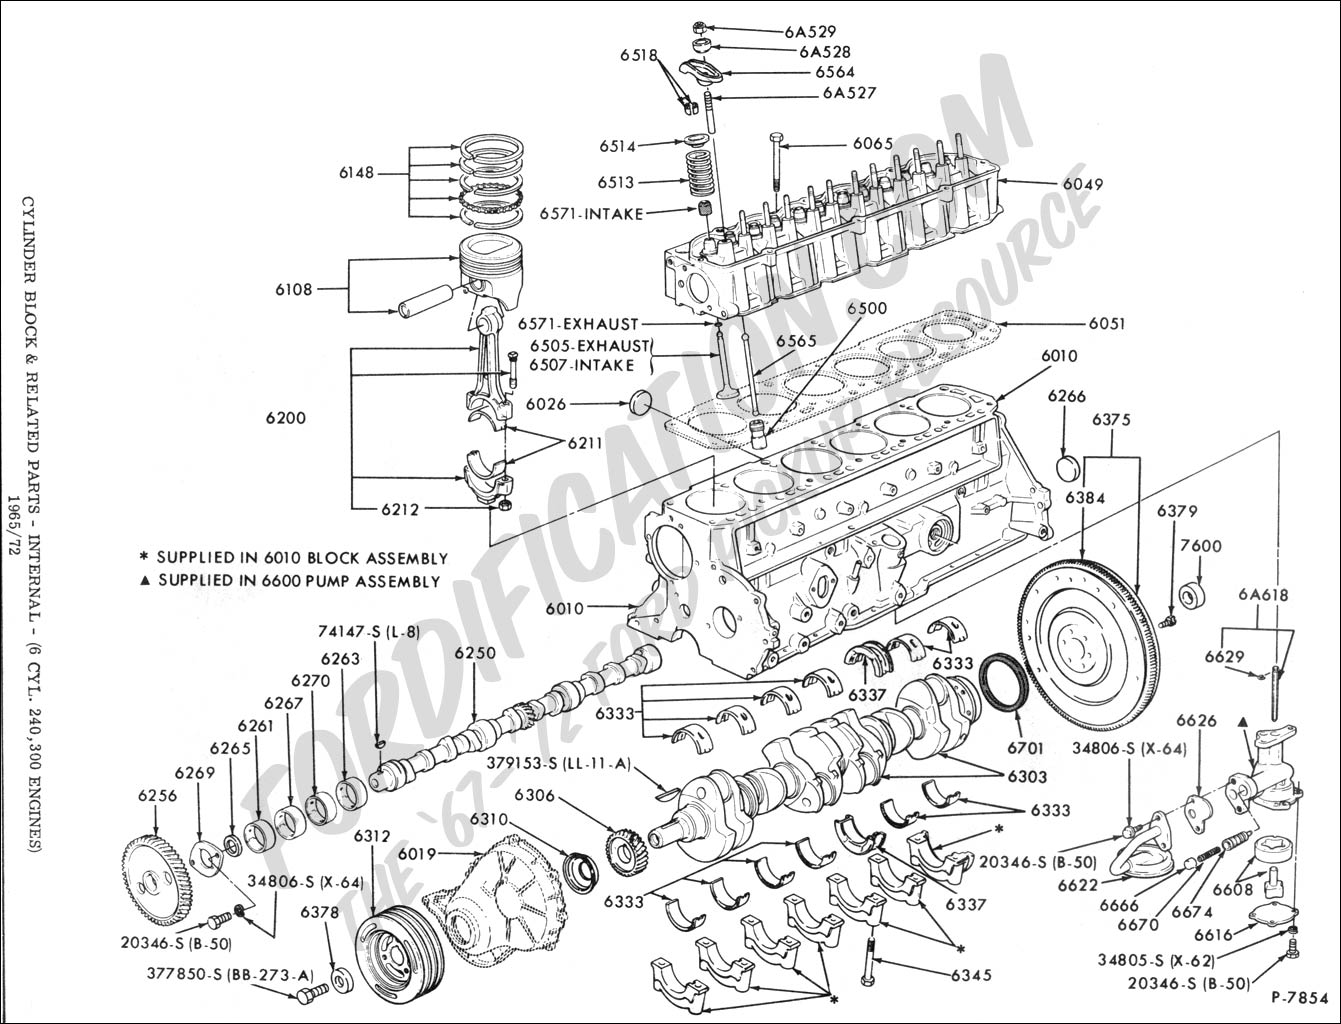 1966 mustang 289 wiring diagram 302 engine block diagram at free freeautoresponder co